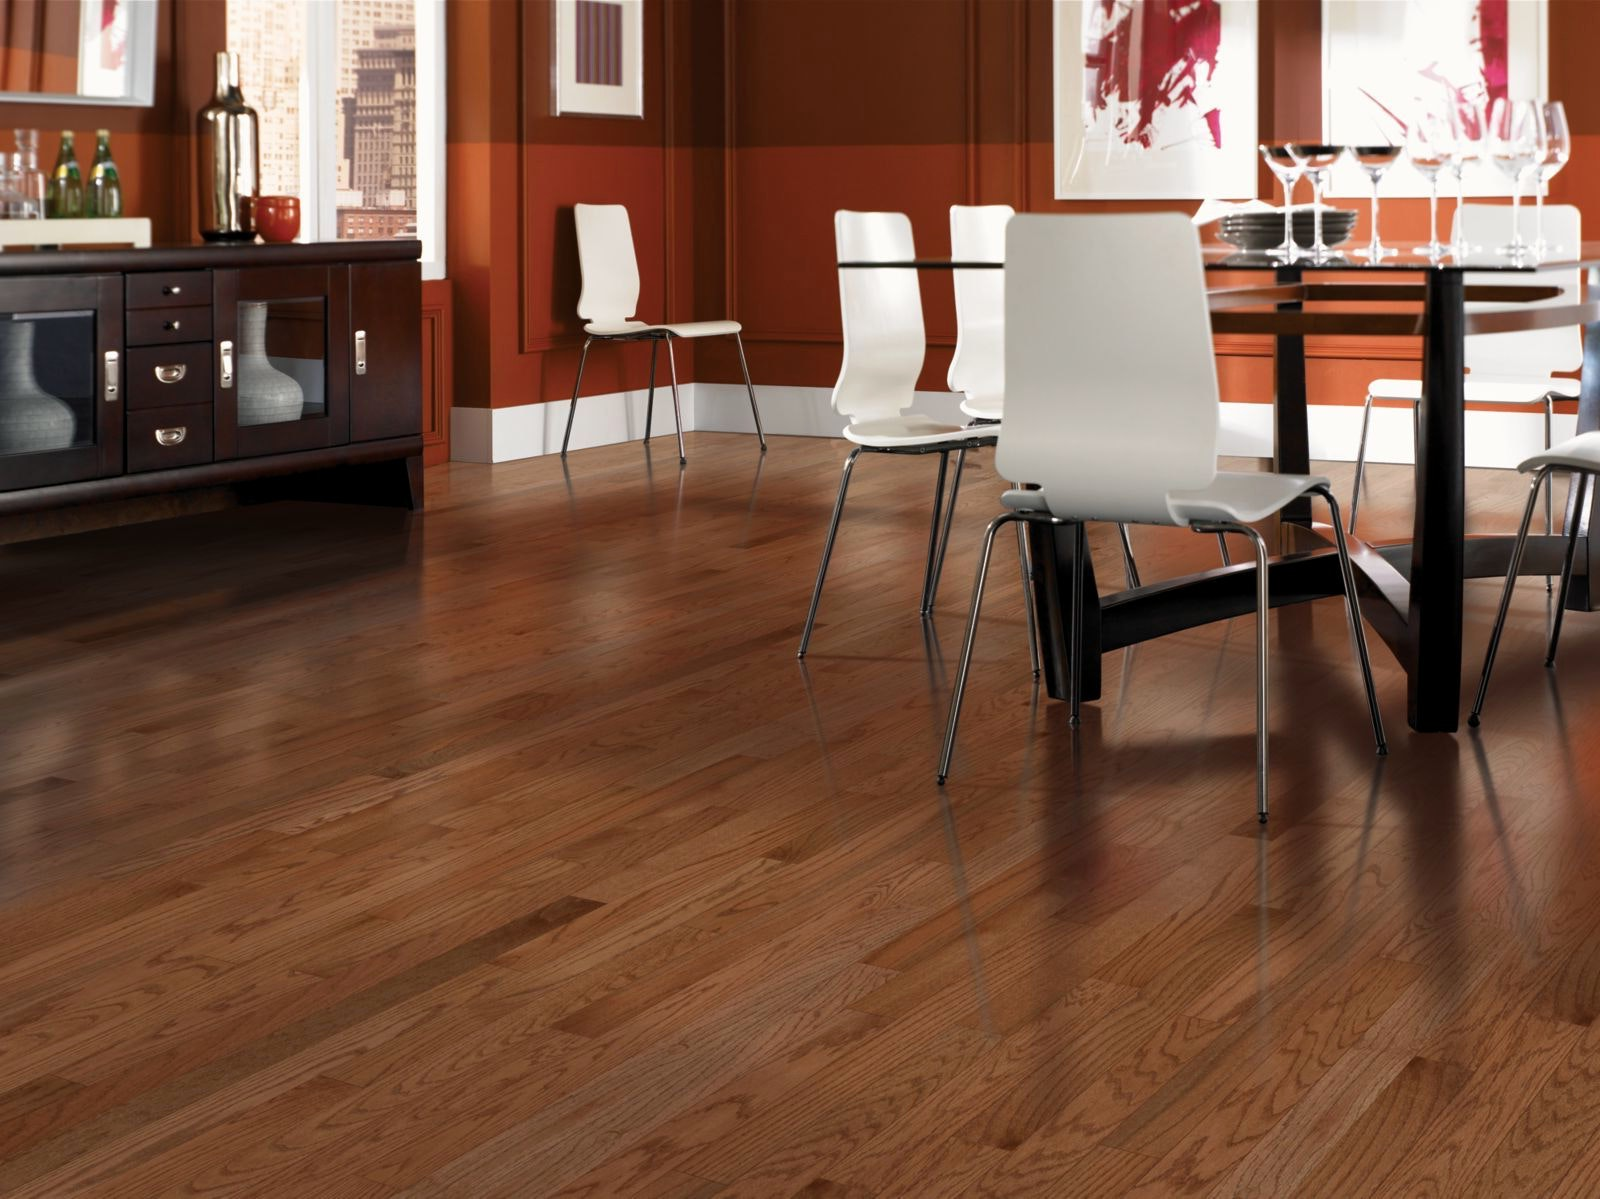 Mohawk Wood Laminate Flooring Reviews Alyssamyers